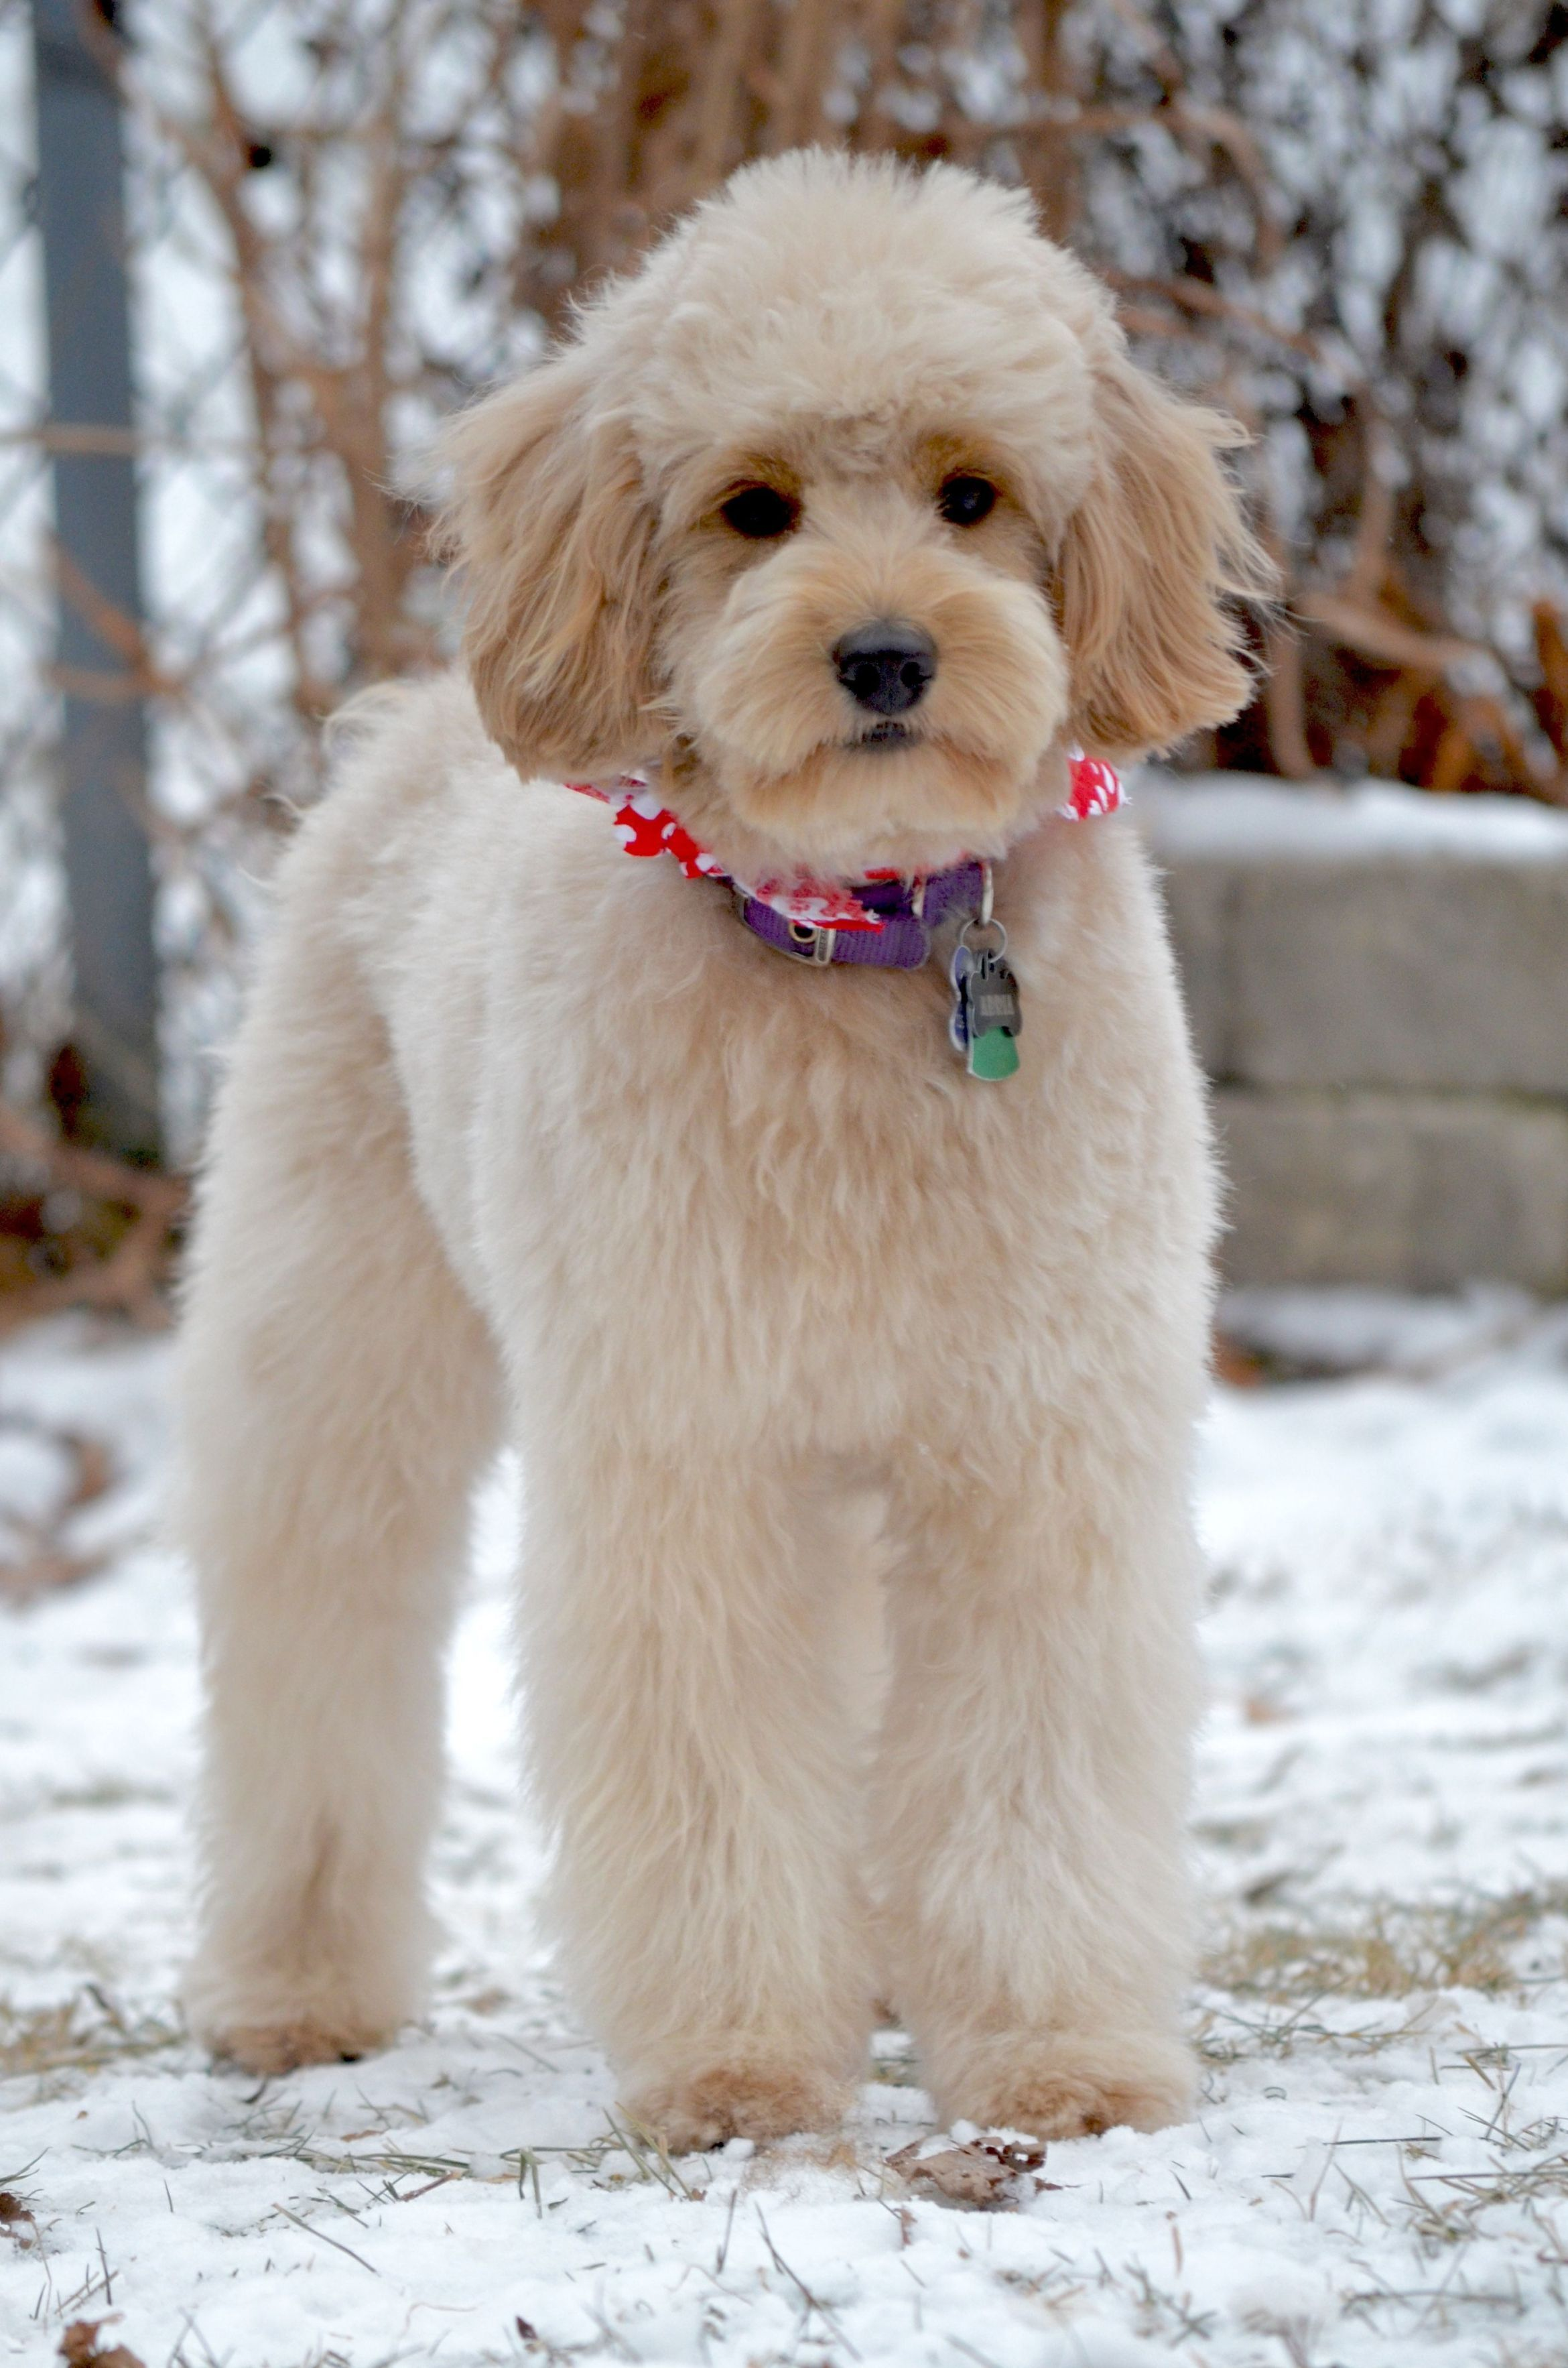 16 new goldendoodle haircut guide pictures meowlogy 16 new goldendoodle haircut guide pictures goldendoodle